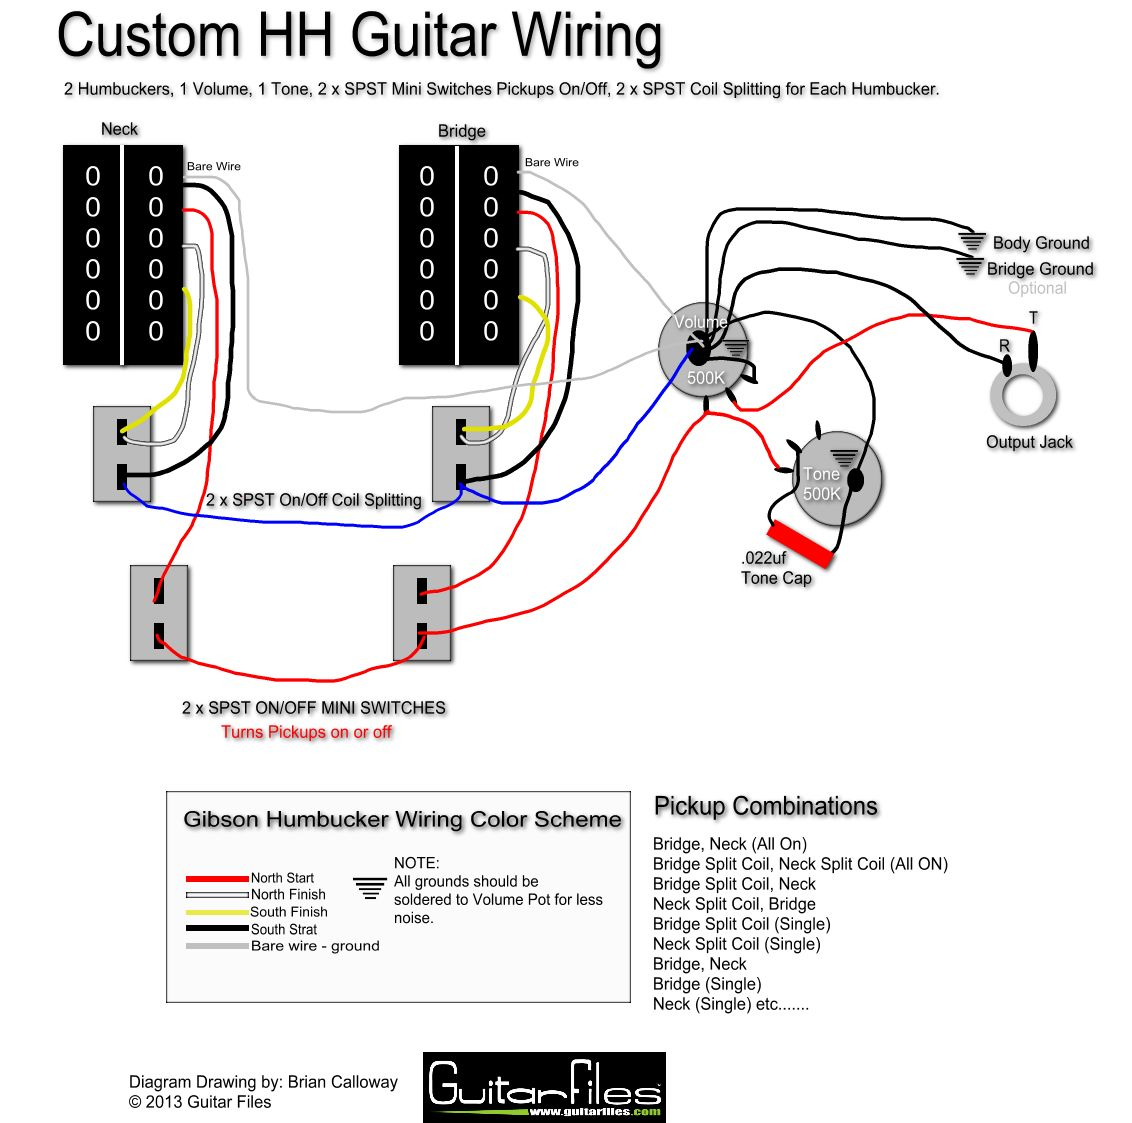 Wiring Diagram Coil Split Libraries Push Pull Pot Phase Reversal Problems Mylespaulcom Custom Hh With Spst Splitting And Switchingcustom